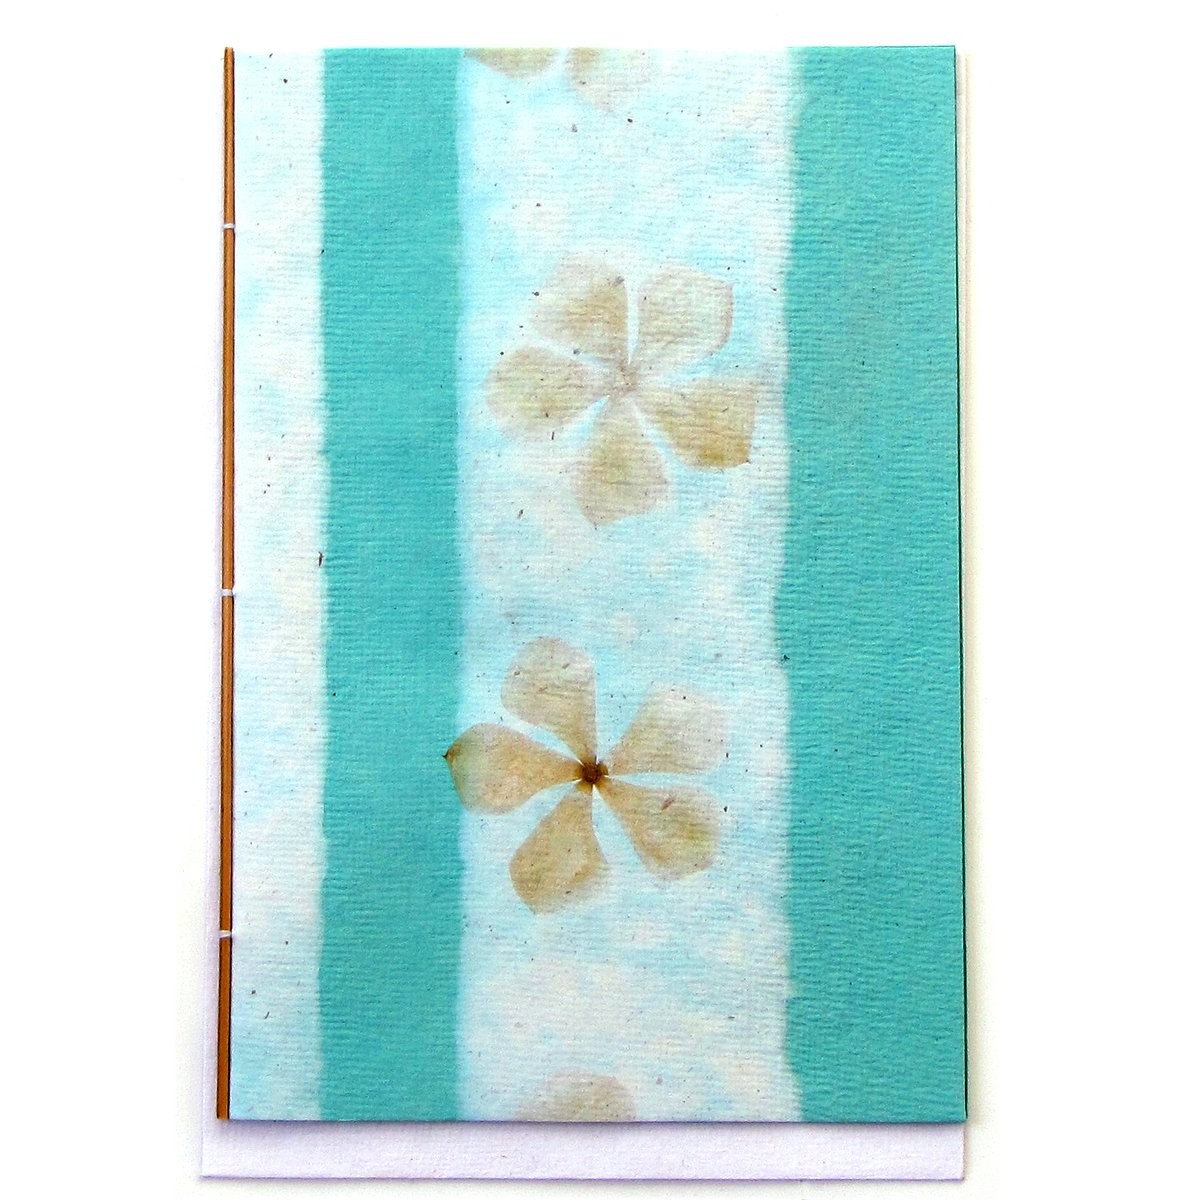 Eco friendly handmade greetings thank you mom cards handcrafted tree free aqua paper 5x7 flower